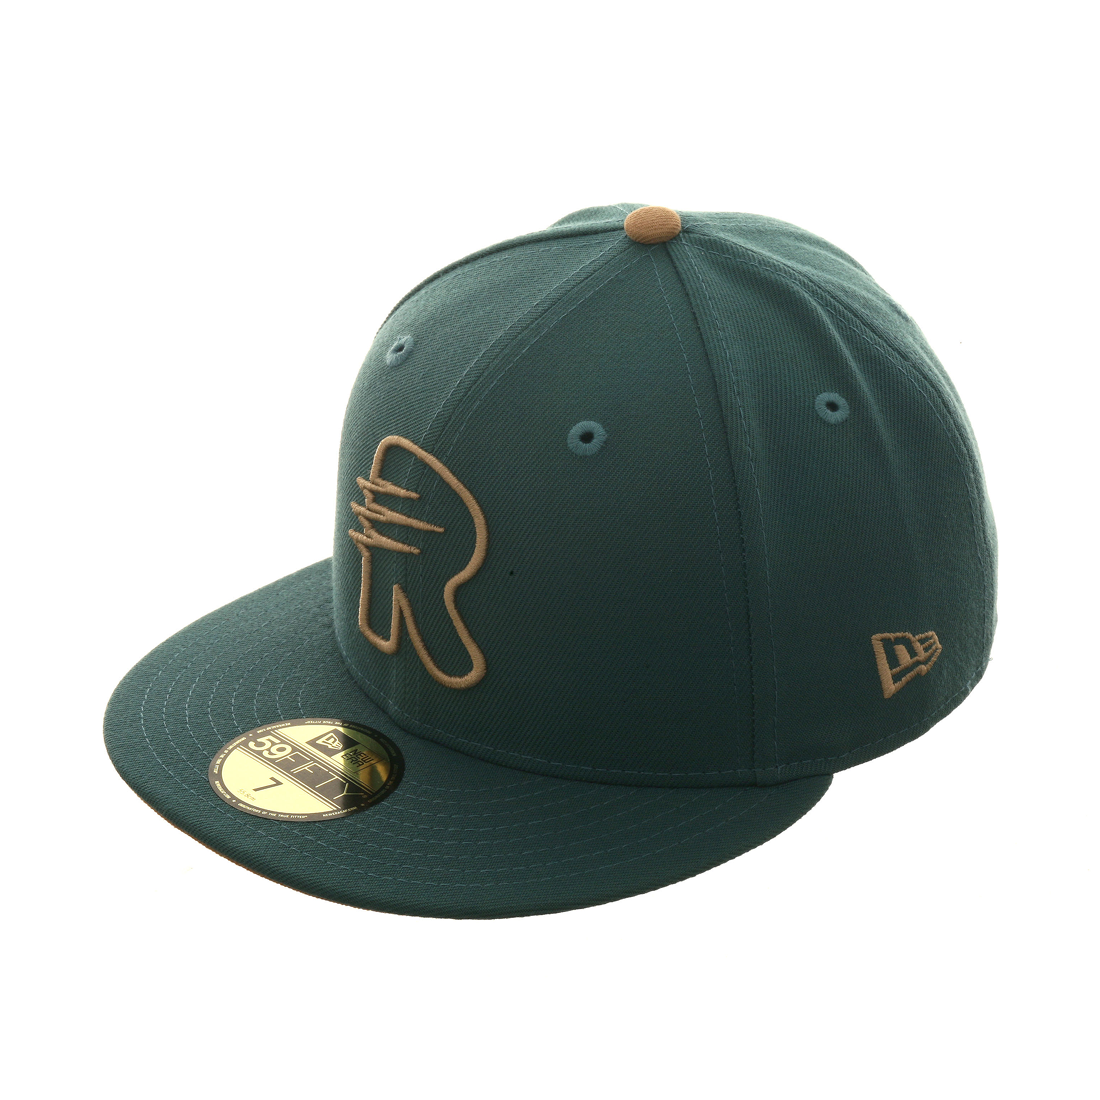 Dionic New Era 59Fifty Raptors R  Hat - Green , Khaki